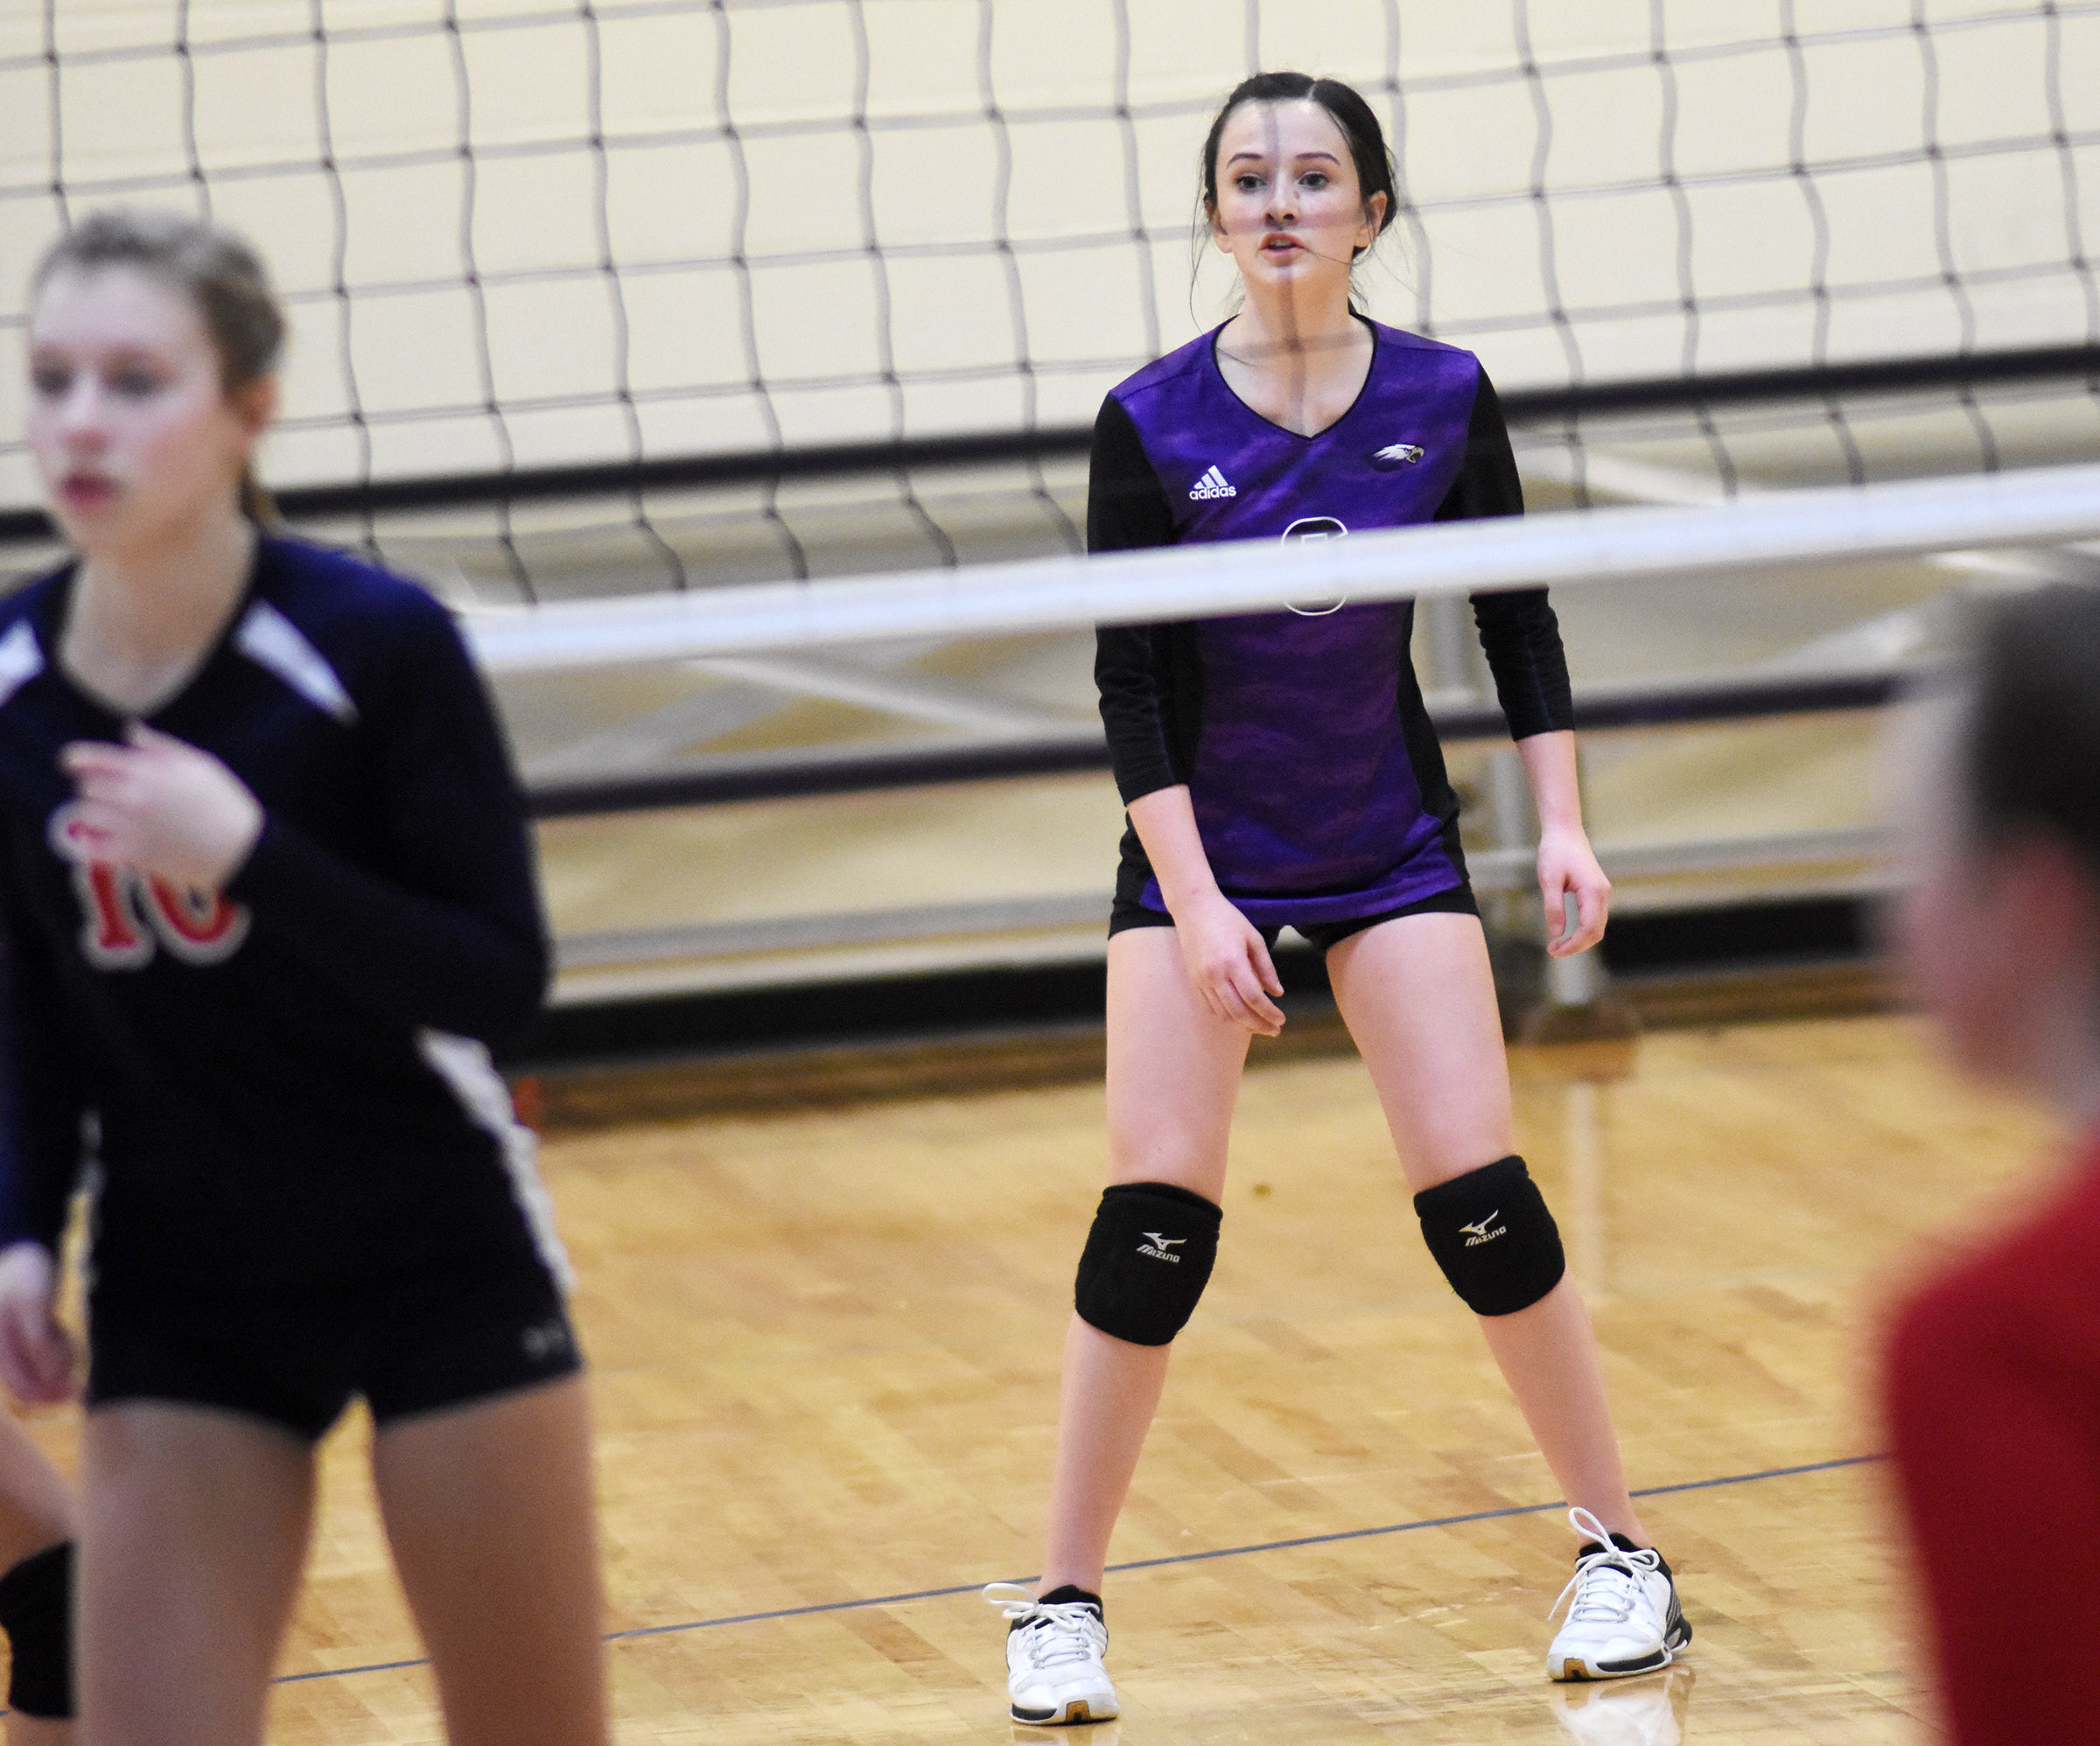 CMS eighth-grader Sarah Adkins watches the serve.